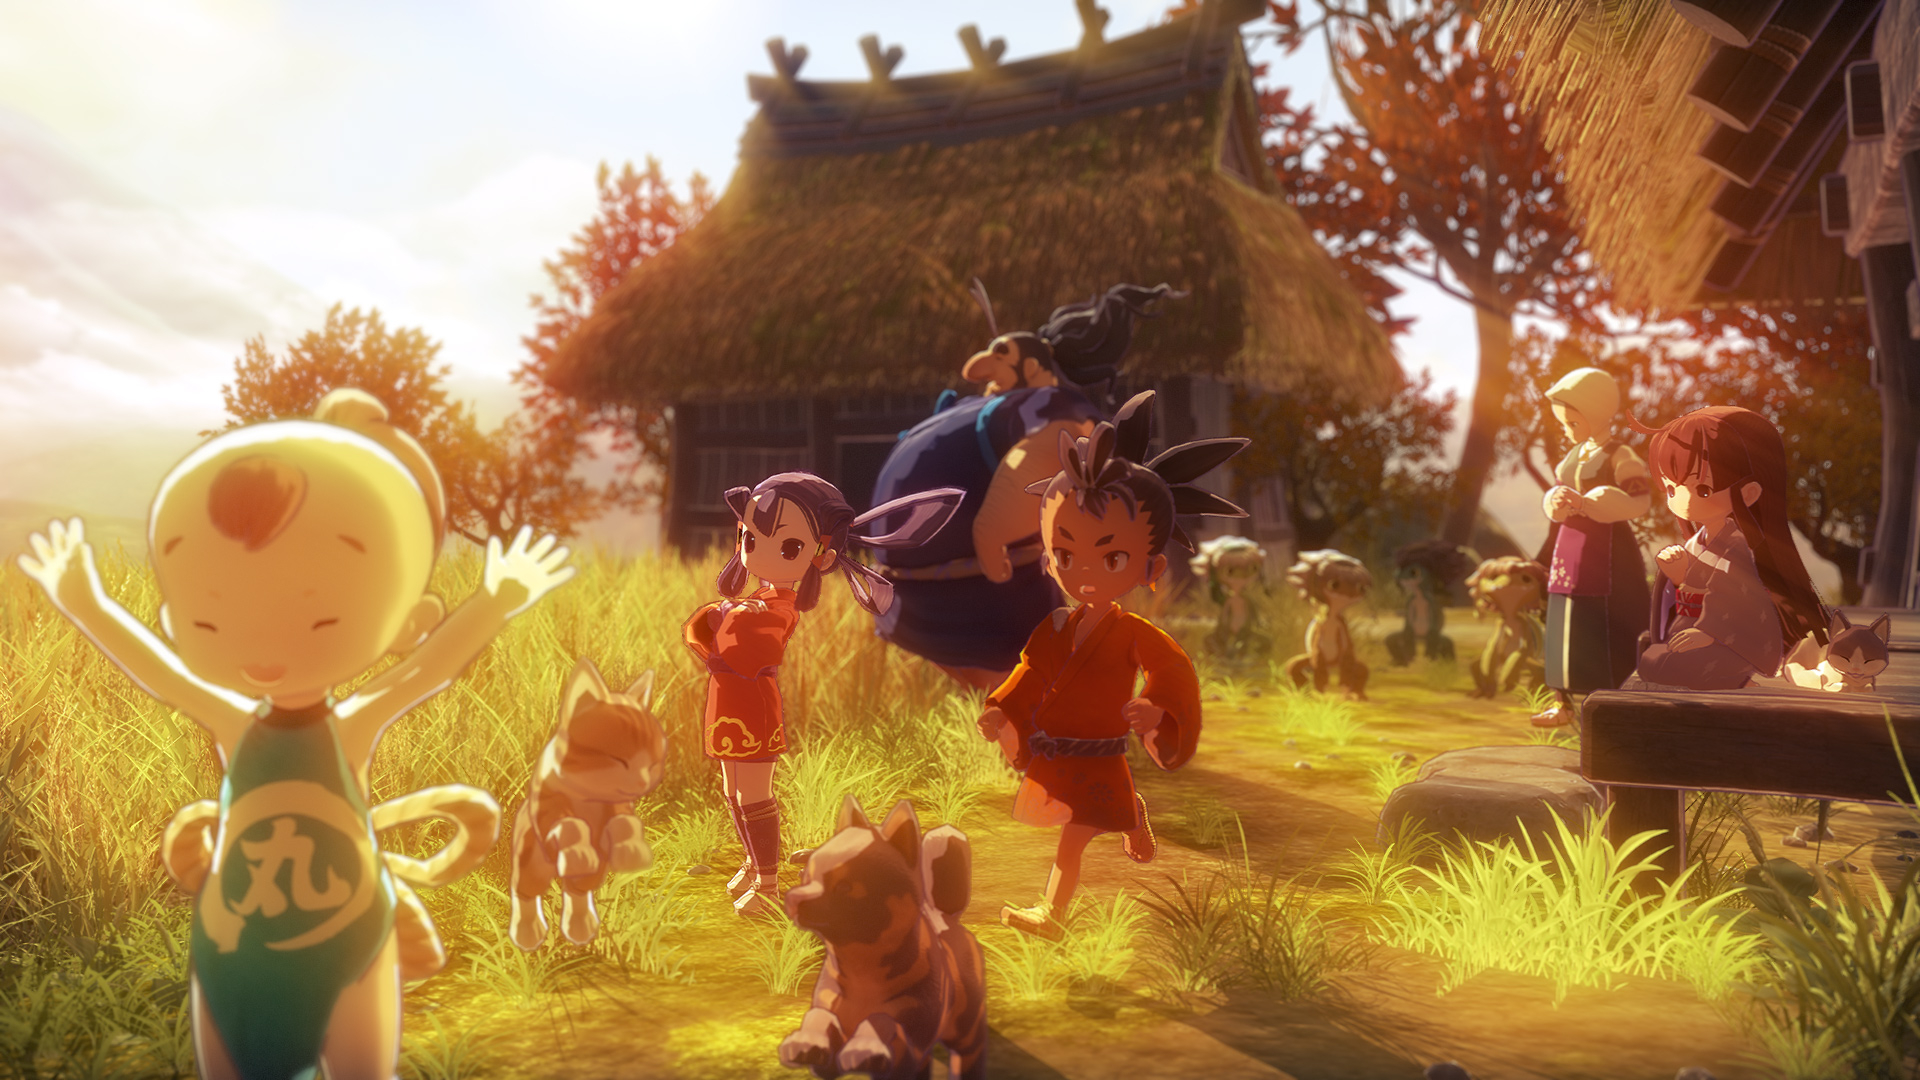 Sakuna: Of Rice and Ruin will be buried in November, but I'm pumped to play it screenshot